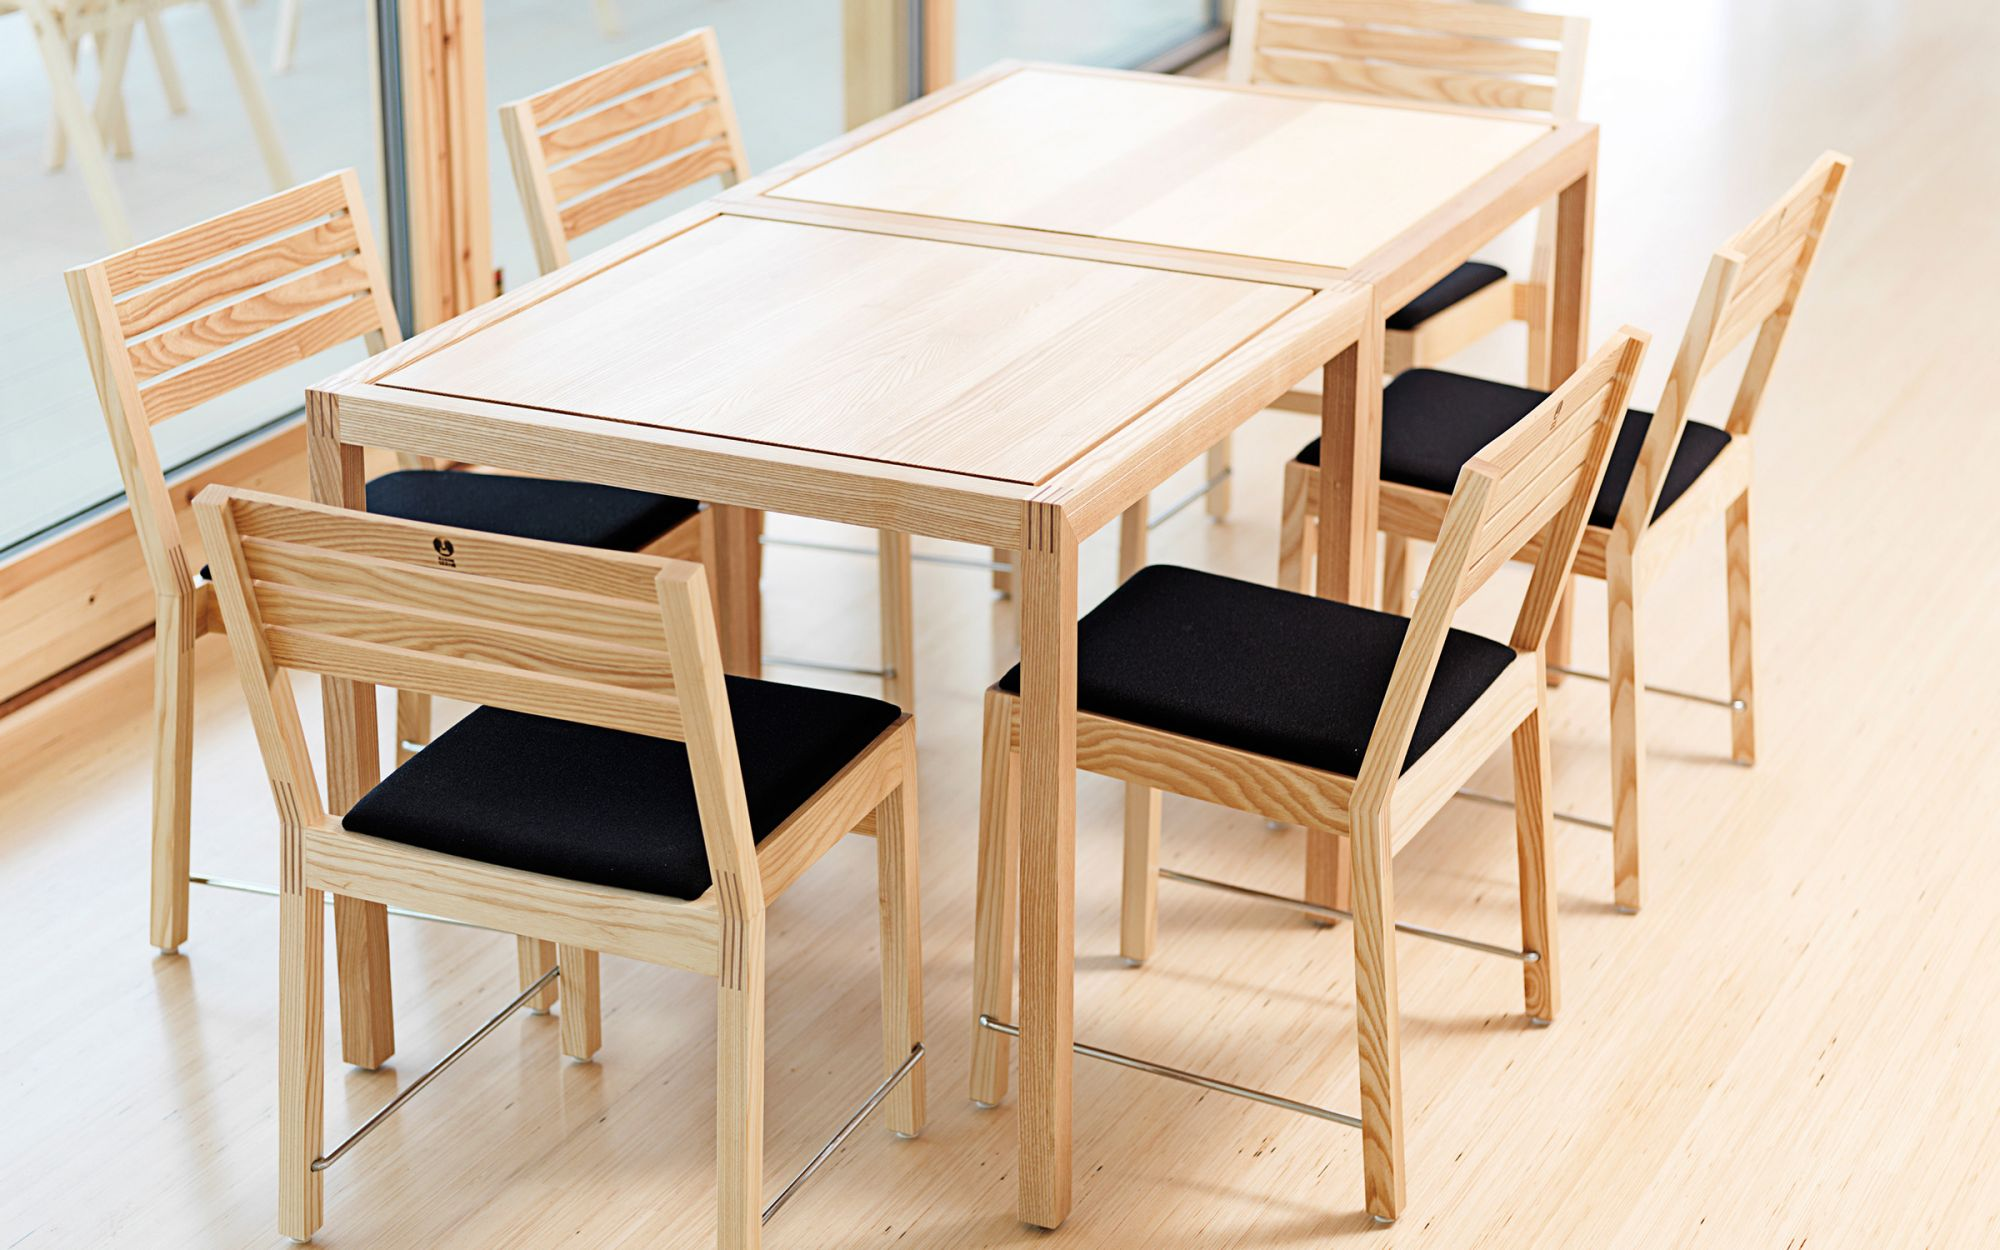 Series Piano chair table wood group